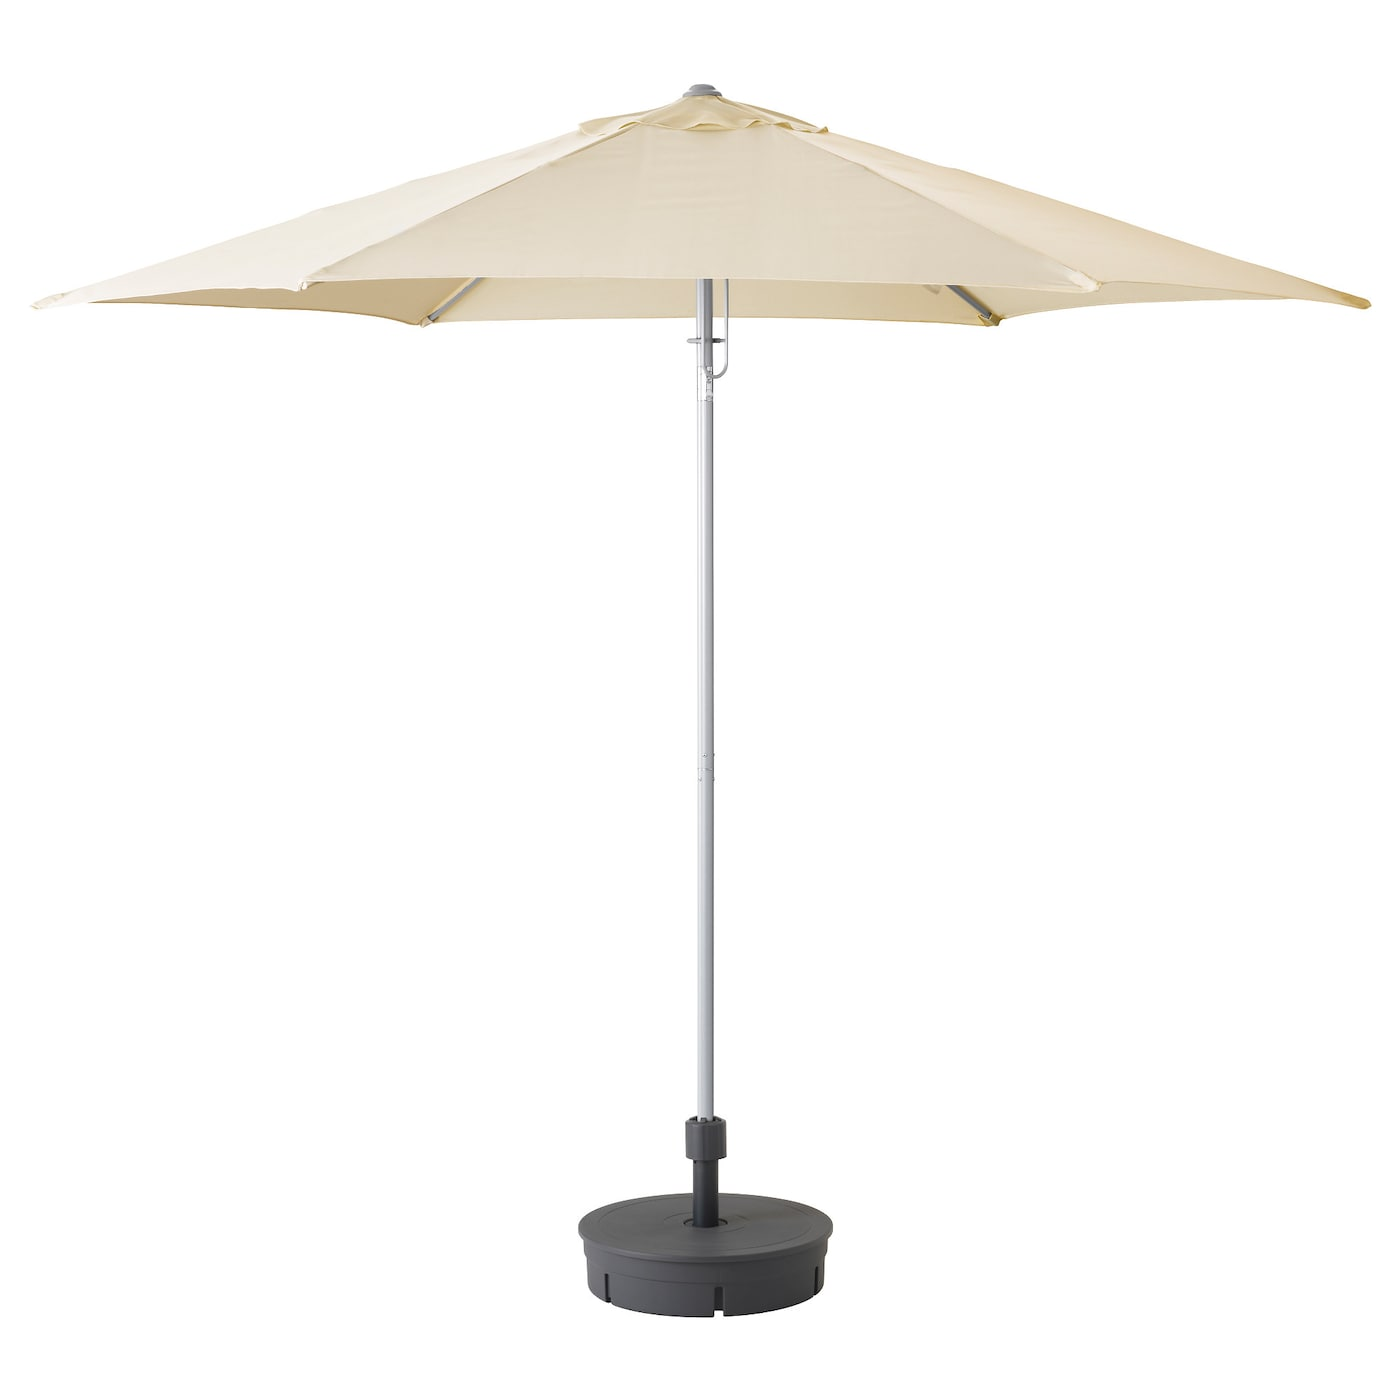 IKEA KARLSÖ parasol with base The air vent reduces wind pressure and allows heat to circulate.